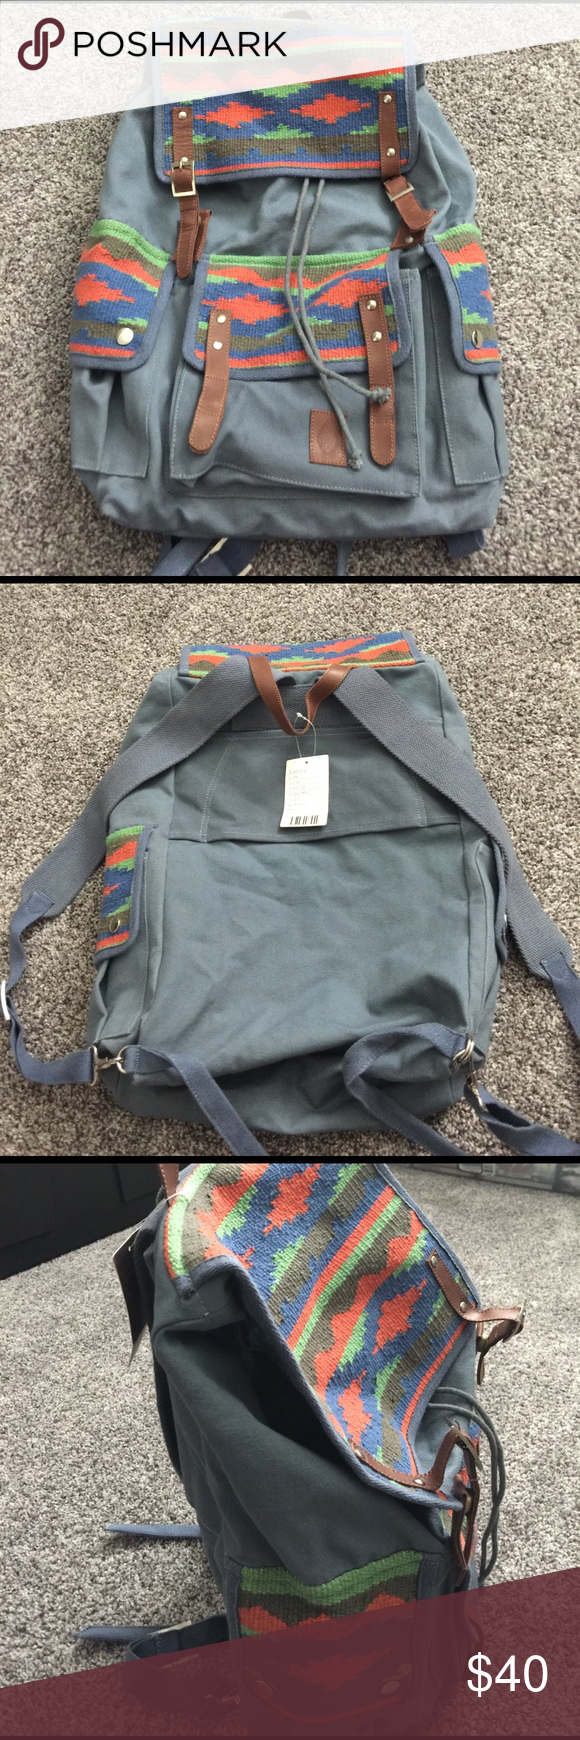 NWT Urban Outfitters urban style backpack  CLassic Urban Backpack with Pendleton Woven design / Canvas Dusty Blue color// Very Spacious // Drawstring and Snap leather strap closures // 3 front pockets // make an offer  Urban Outfitters Bags Backpacks